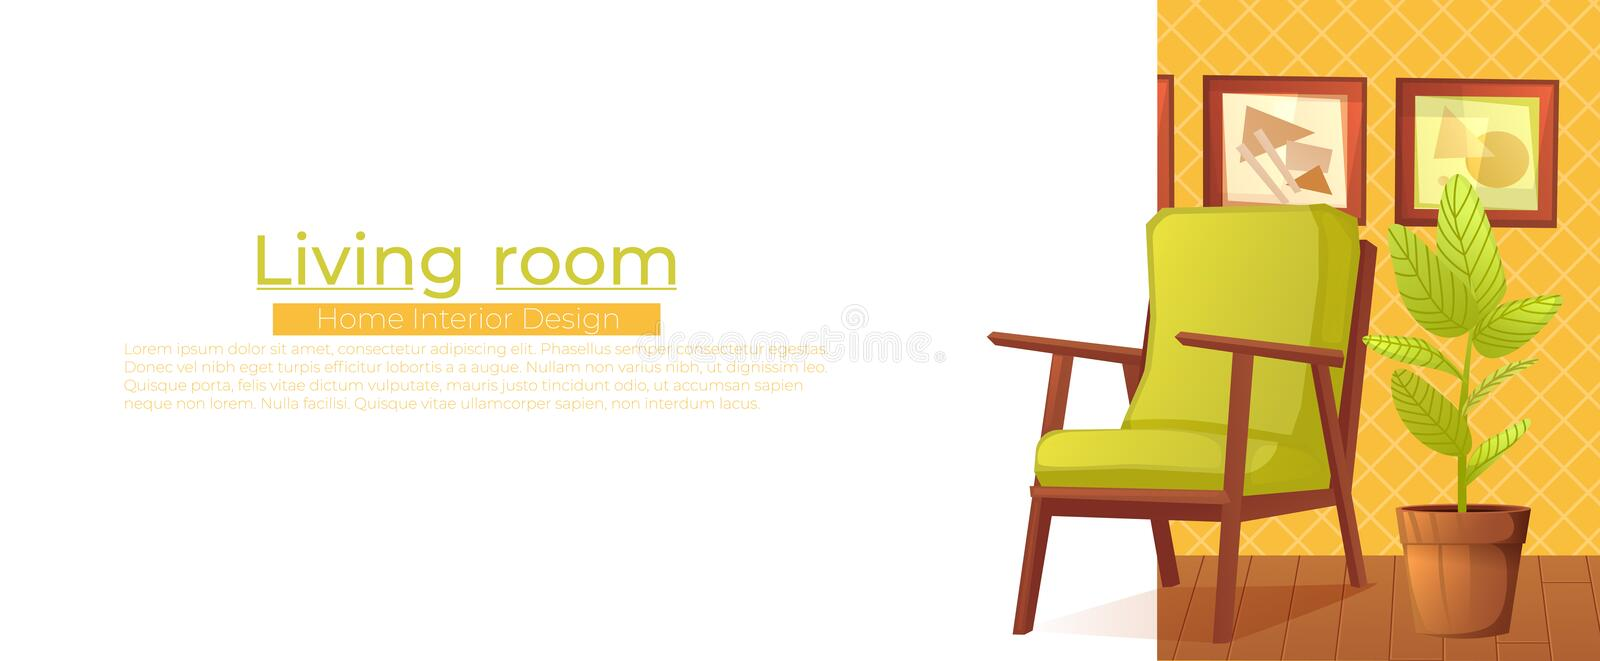 Living room home interior design banner. Comfortable armchair with a plant in a room with retro wallpaper. royalty free illustration